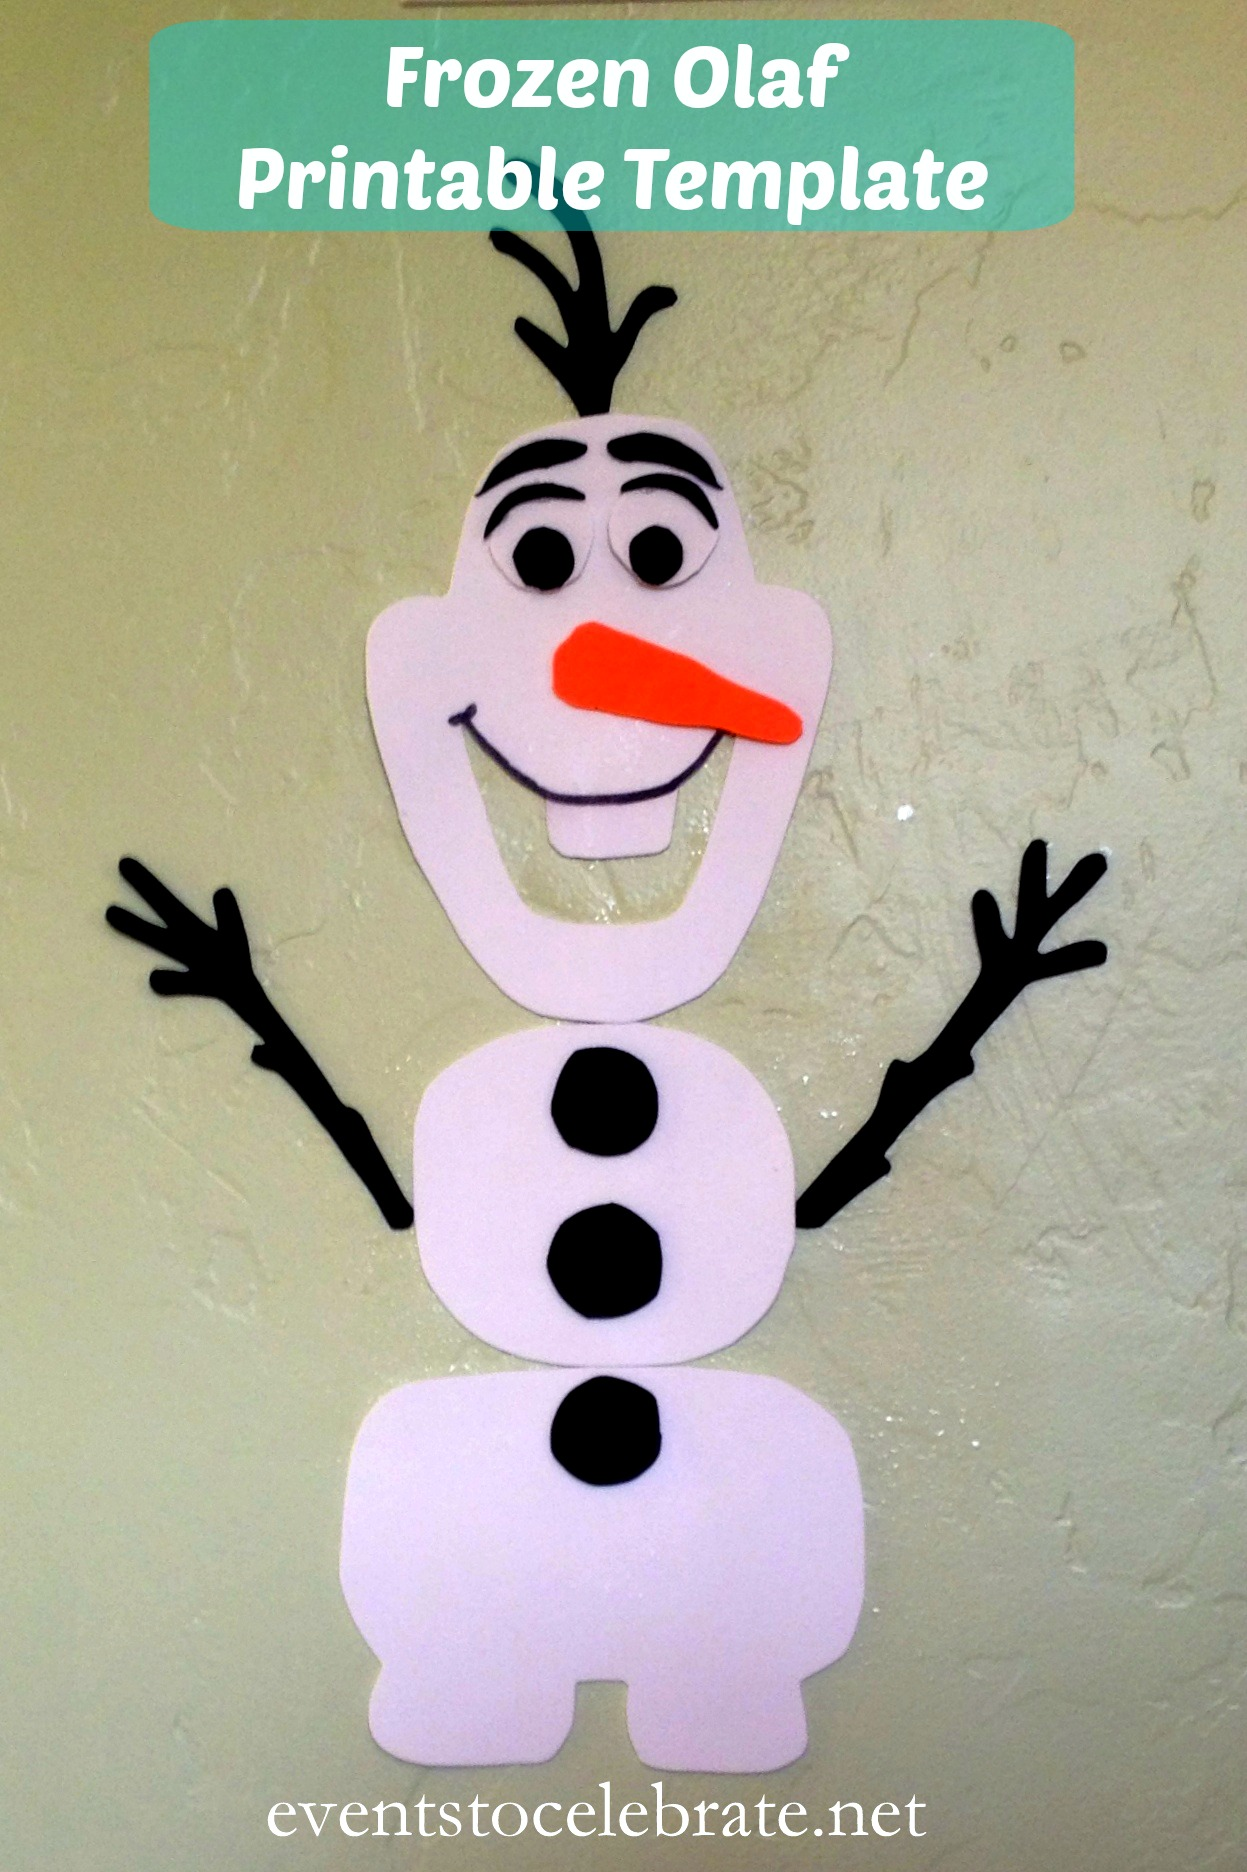 photo relating to Olaf Printable Cut Out named Frozen Olaf Template -